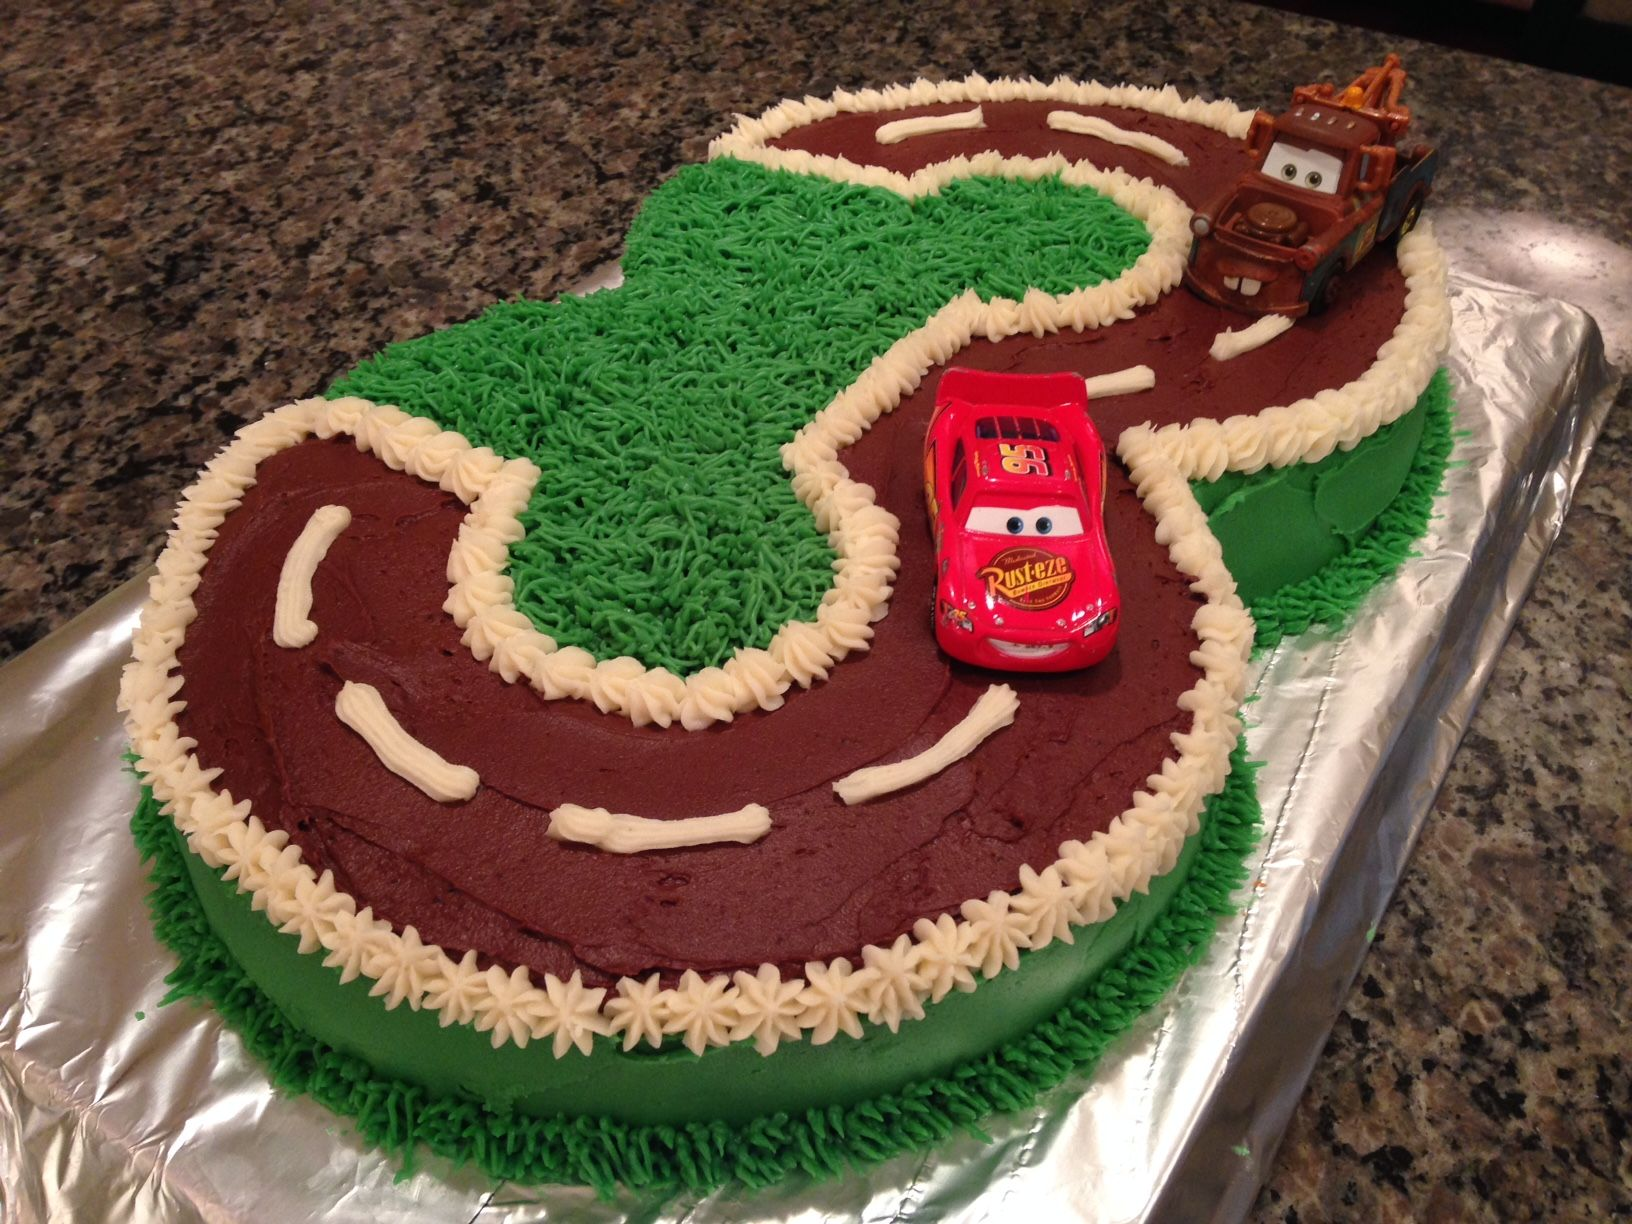 I Made This Cars Birthday Cake For My 3 Year Old Nephew